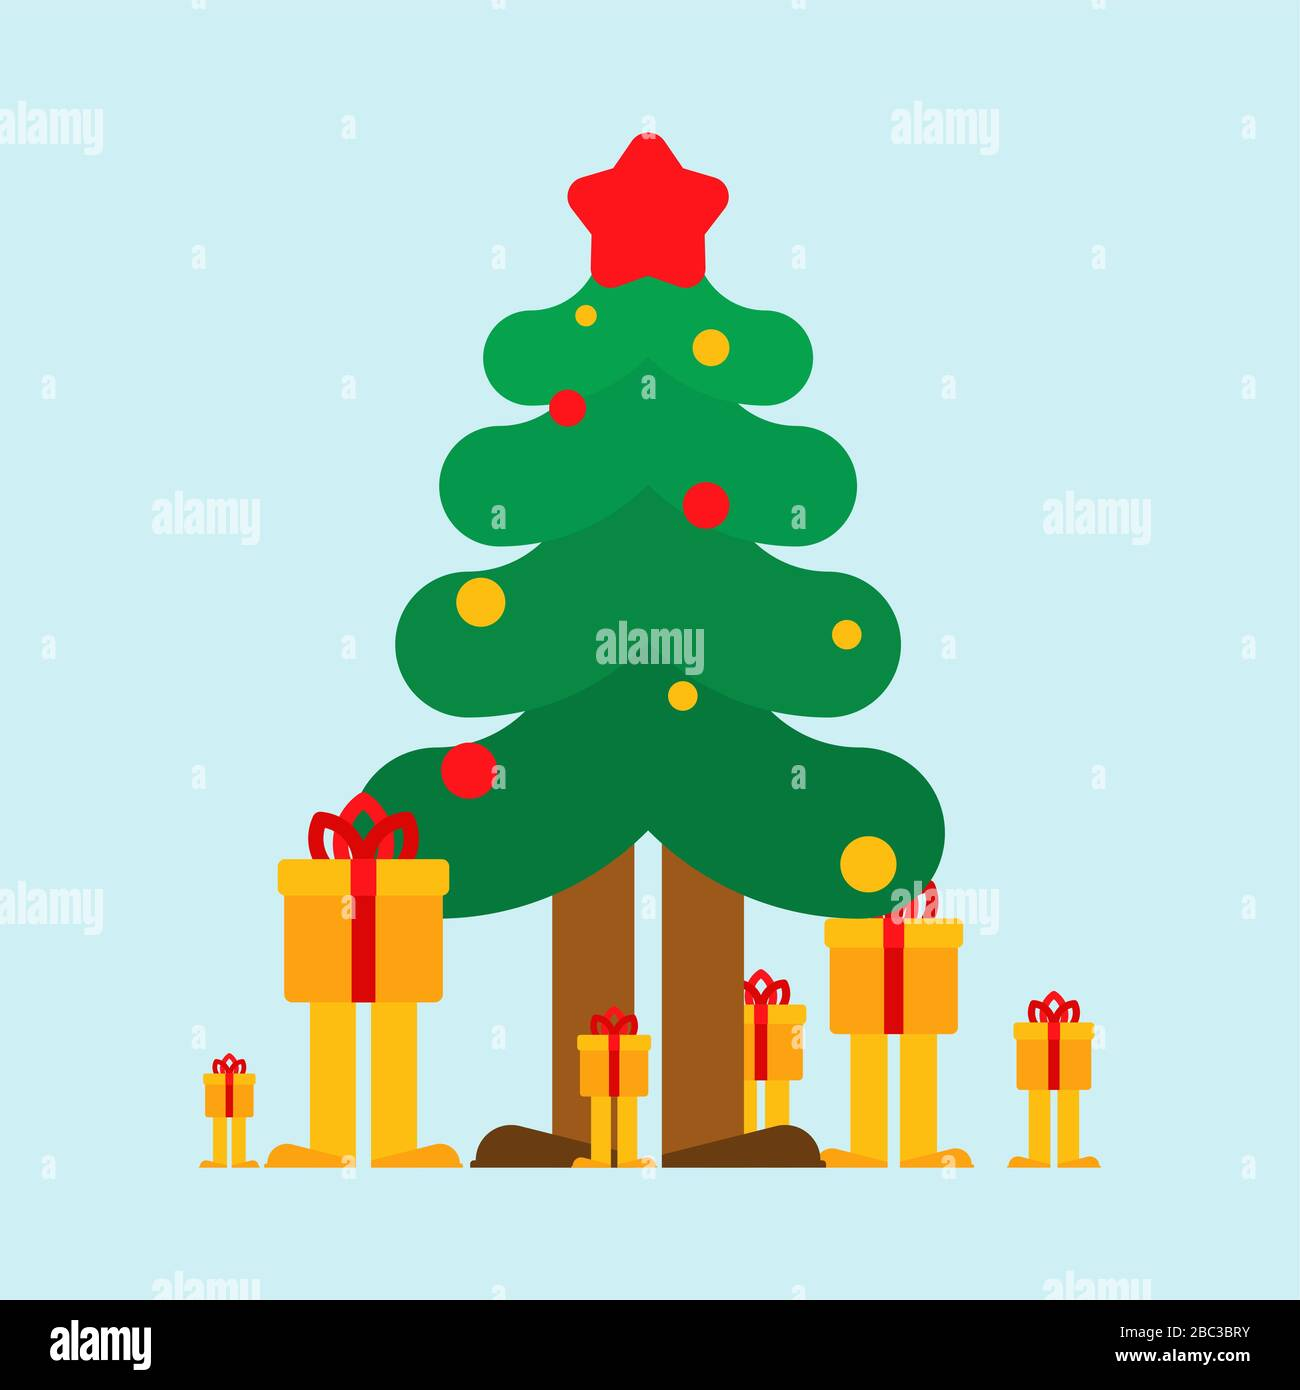 Christmas Tree And Gifts Cartoon Xmas And New Year Stock Vector Image Art Alamy Choose from over a million free vectors, clipart graphics, vector art images, design templates, and illustrations created by artists worldwide! https www alamy com christmas tree and gifts cartoon xmas and new year image351658383 html